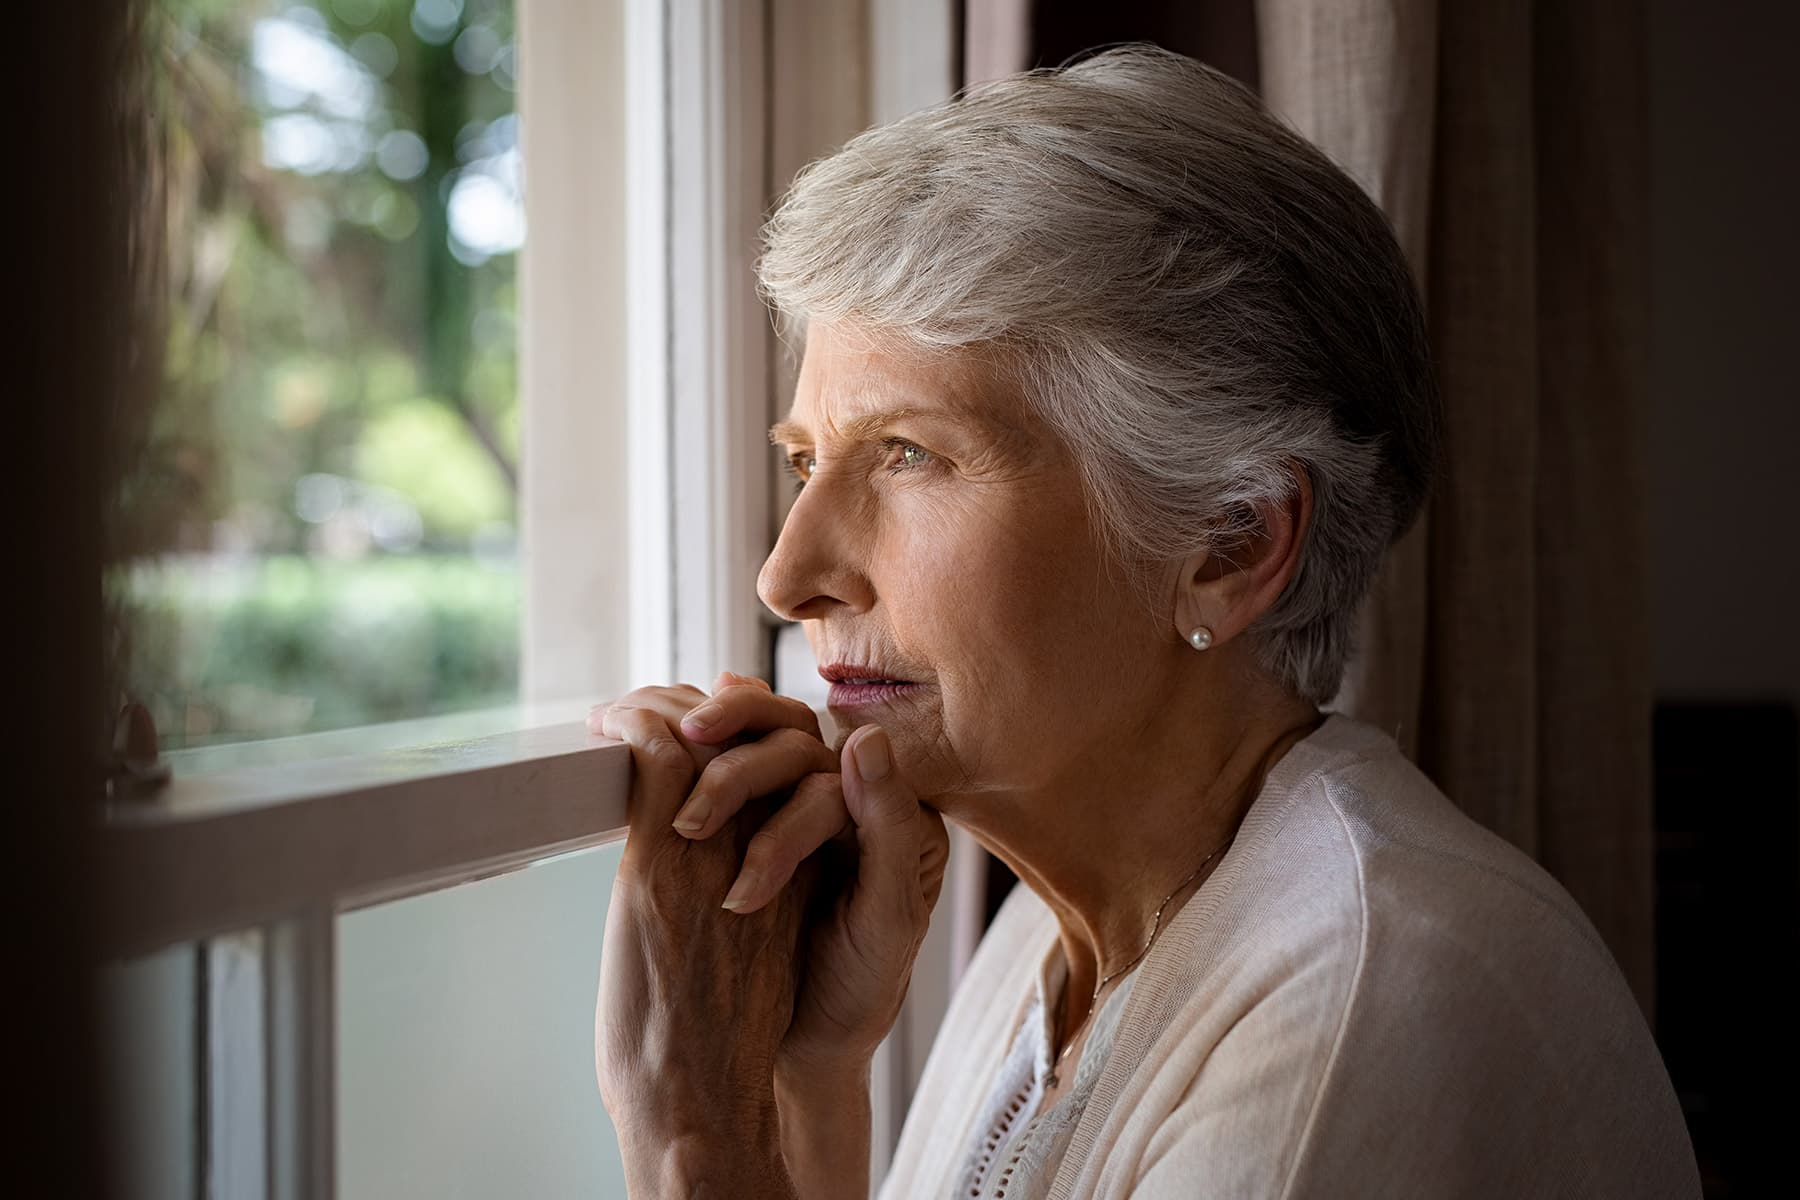 Study Finds Anxiety and Worry May Progress Alzheimer's More Quickly